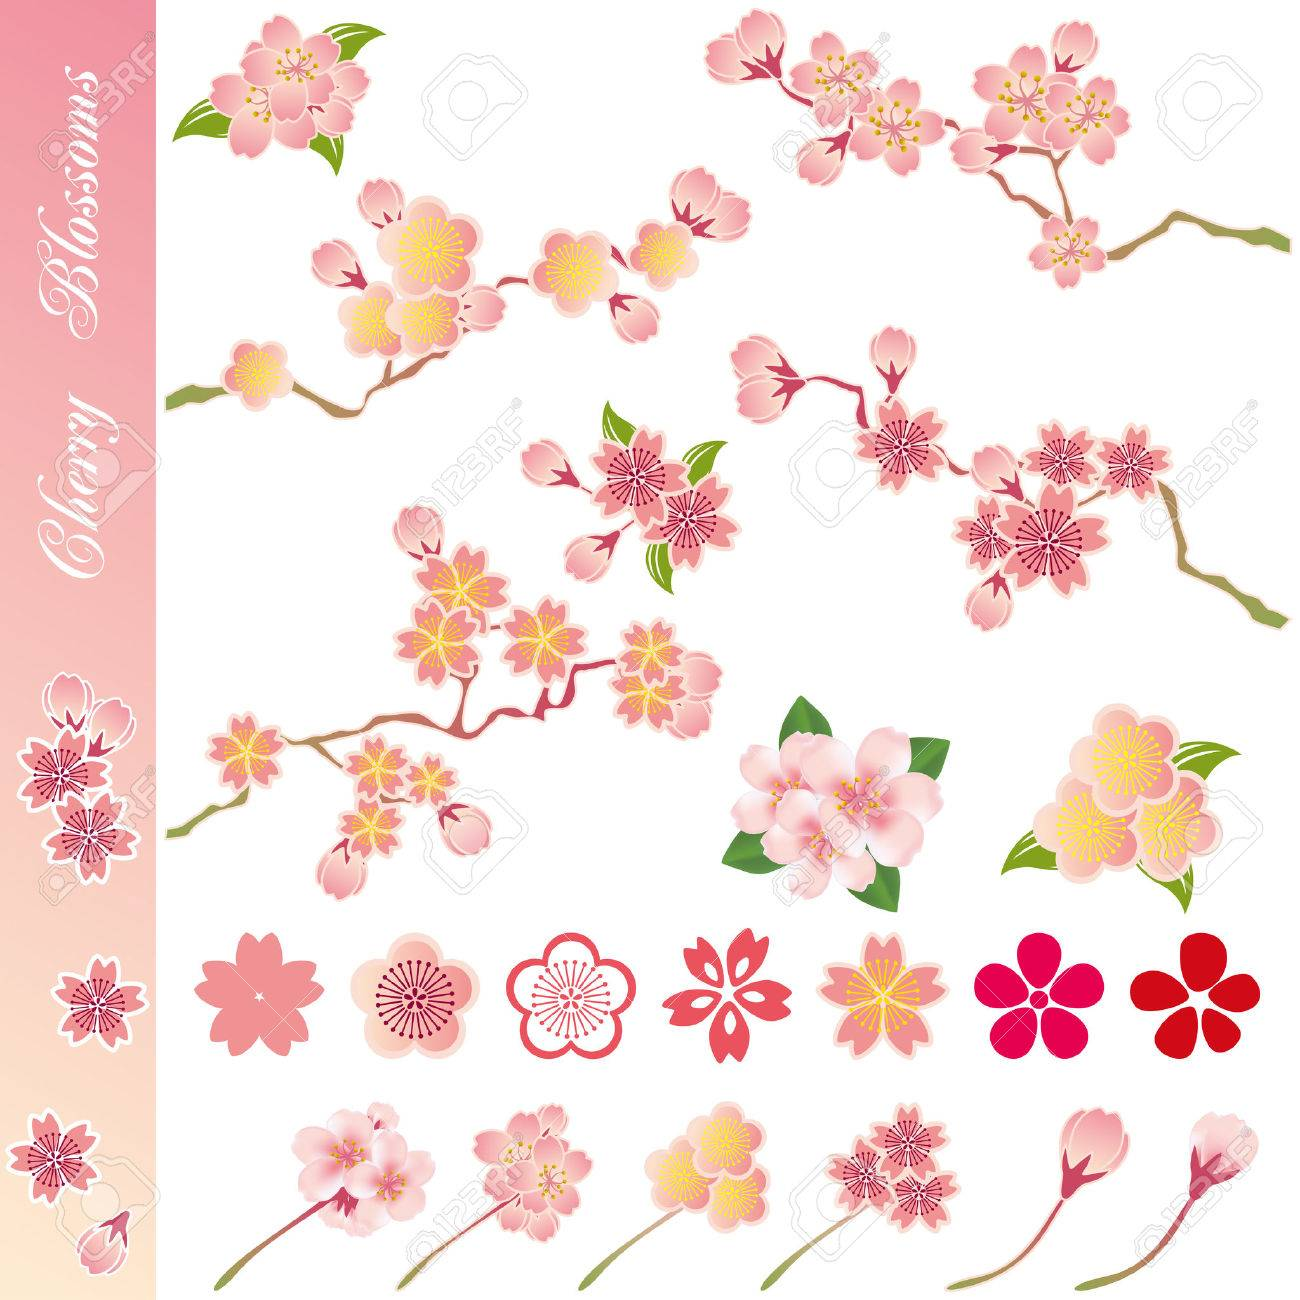 Cherry blossoms icons set. Illustration vector. Stock Vector - 8922077